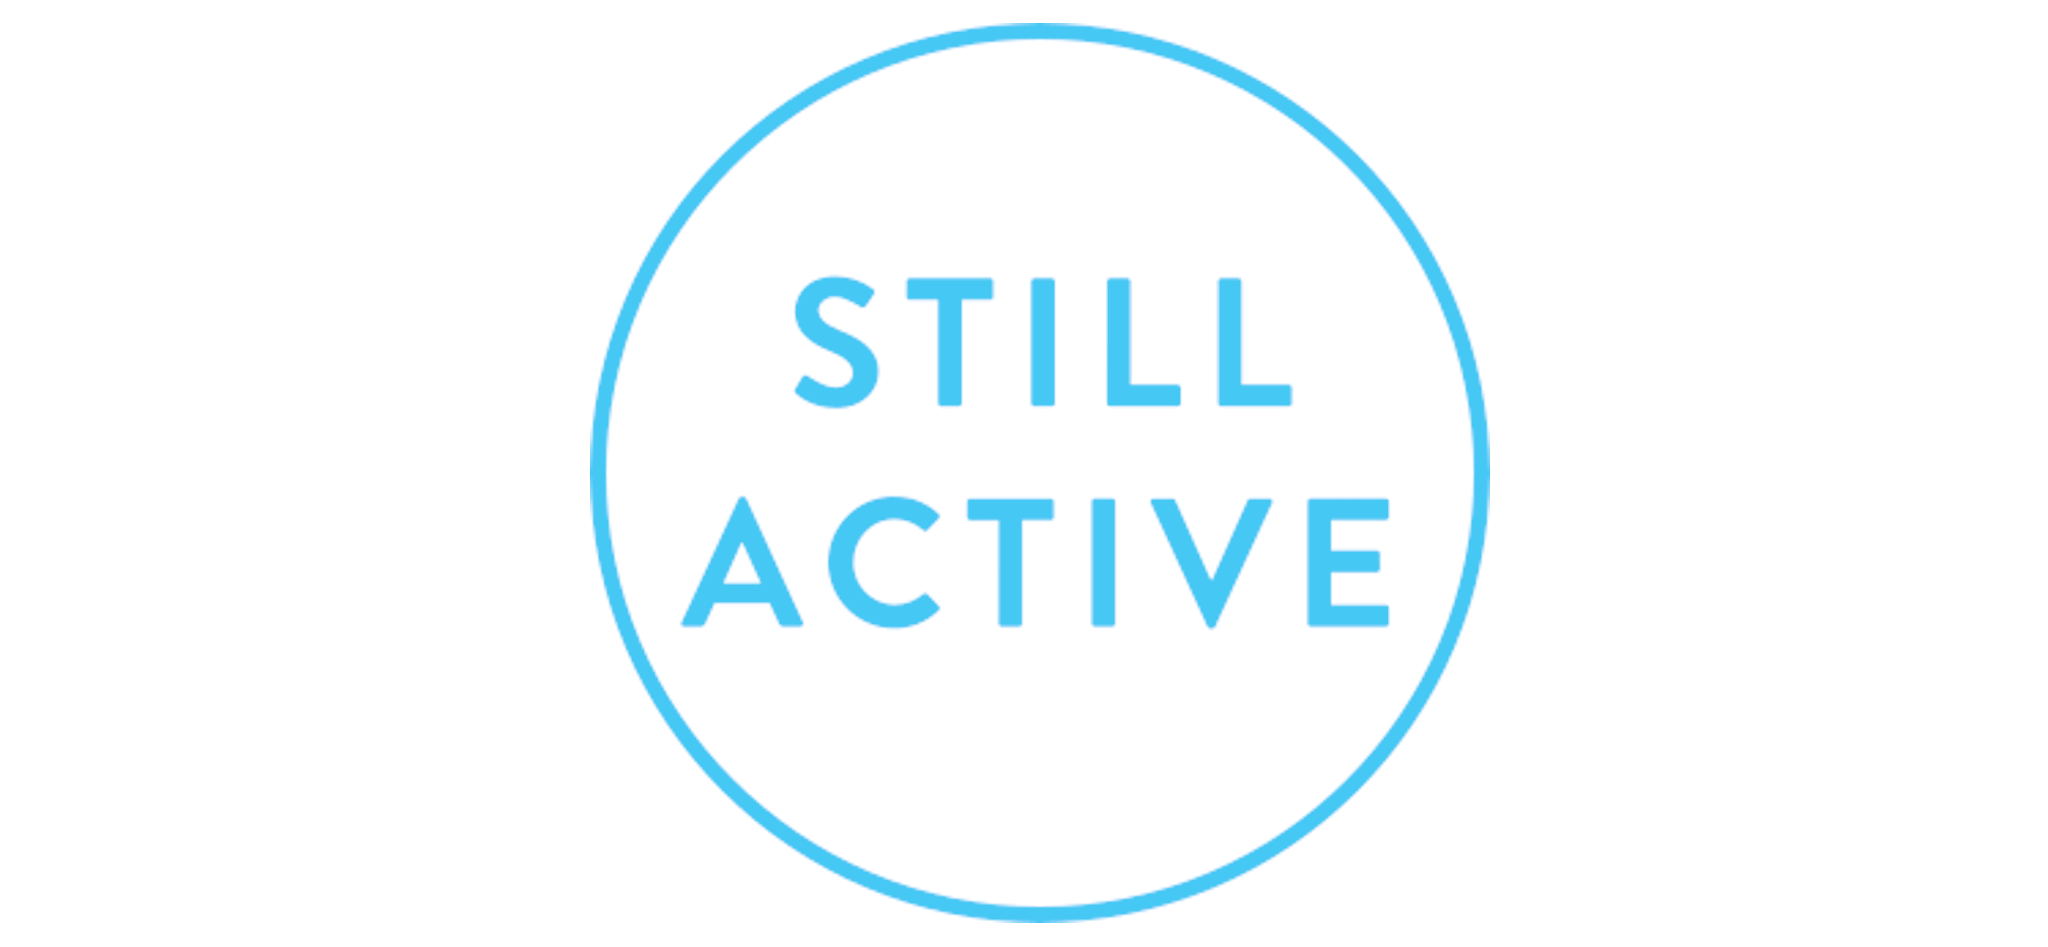 How We Extended a Software Team with Senior Developer for StillActive in 2 Weeks